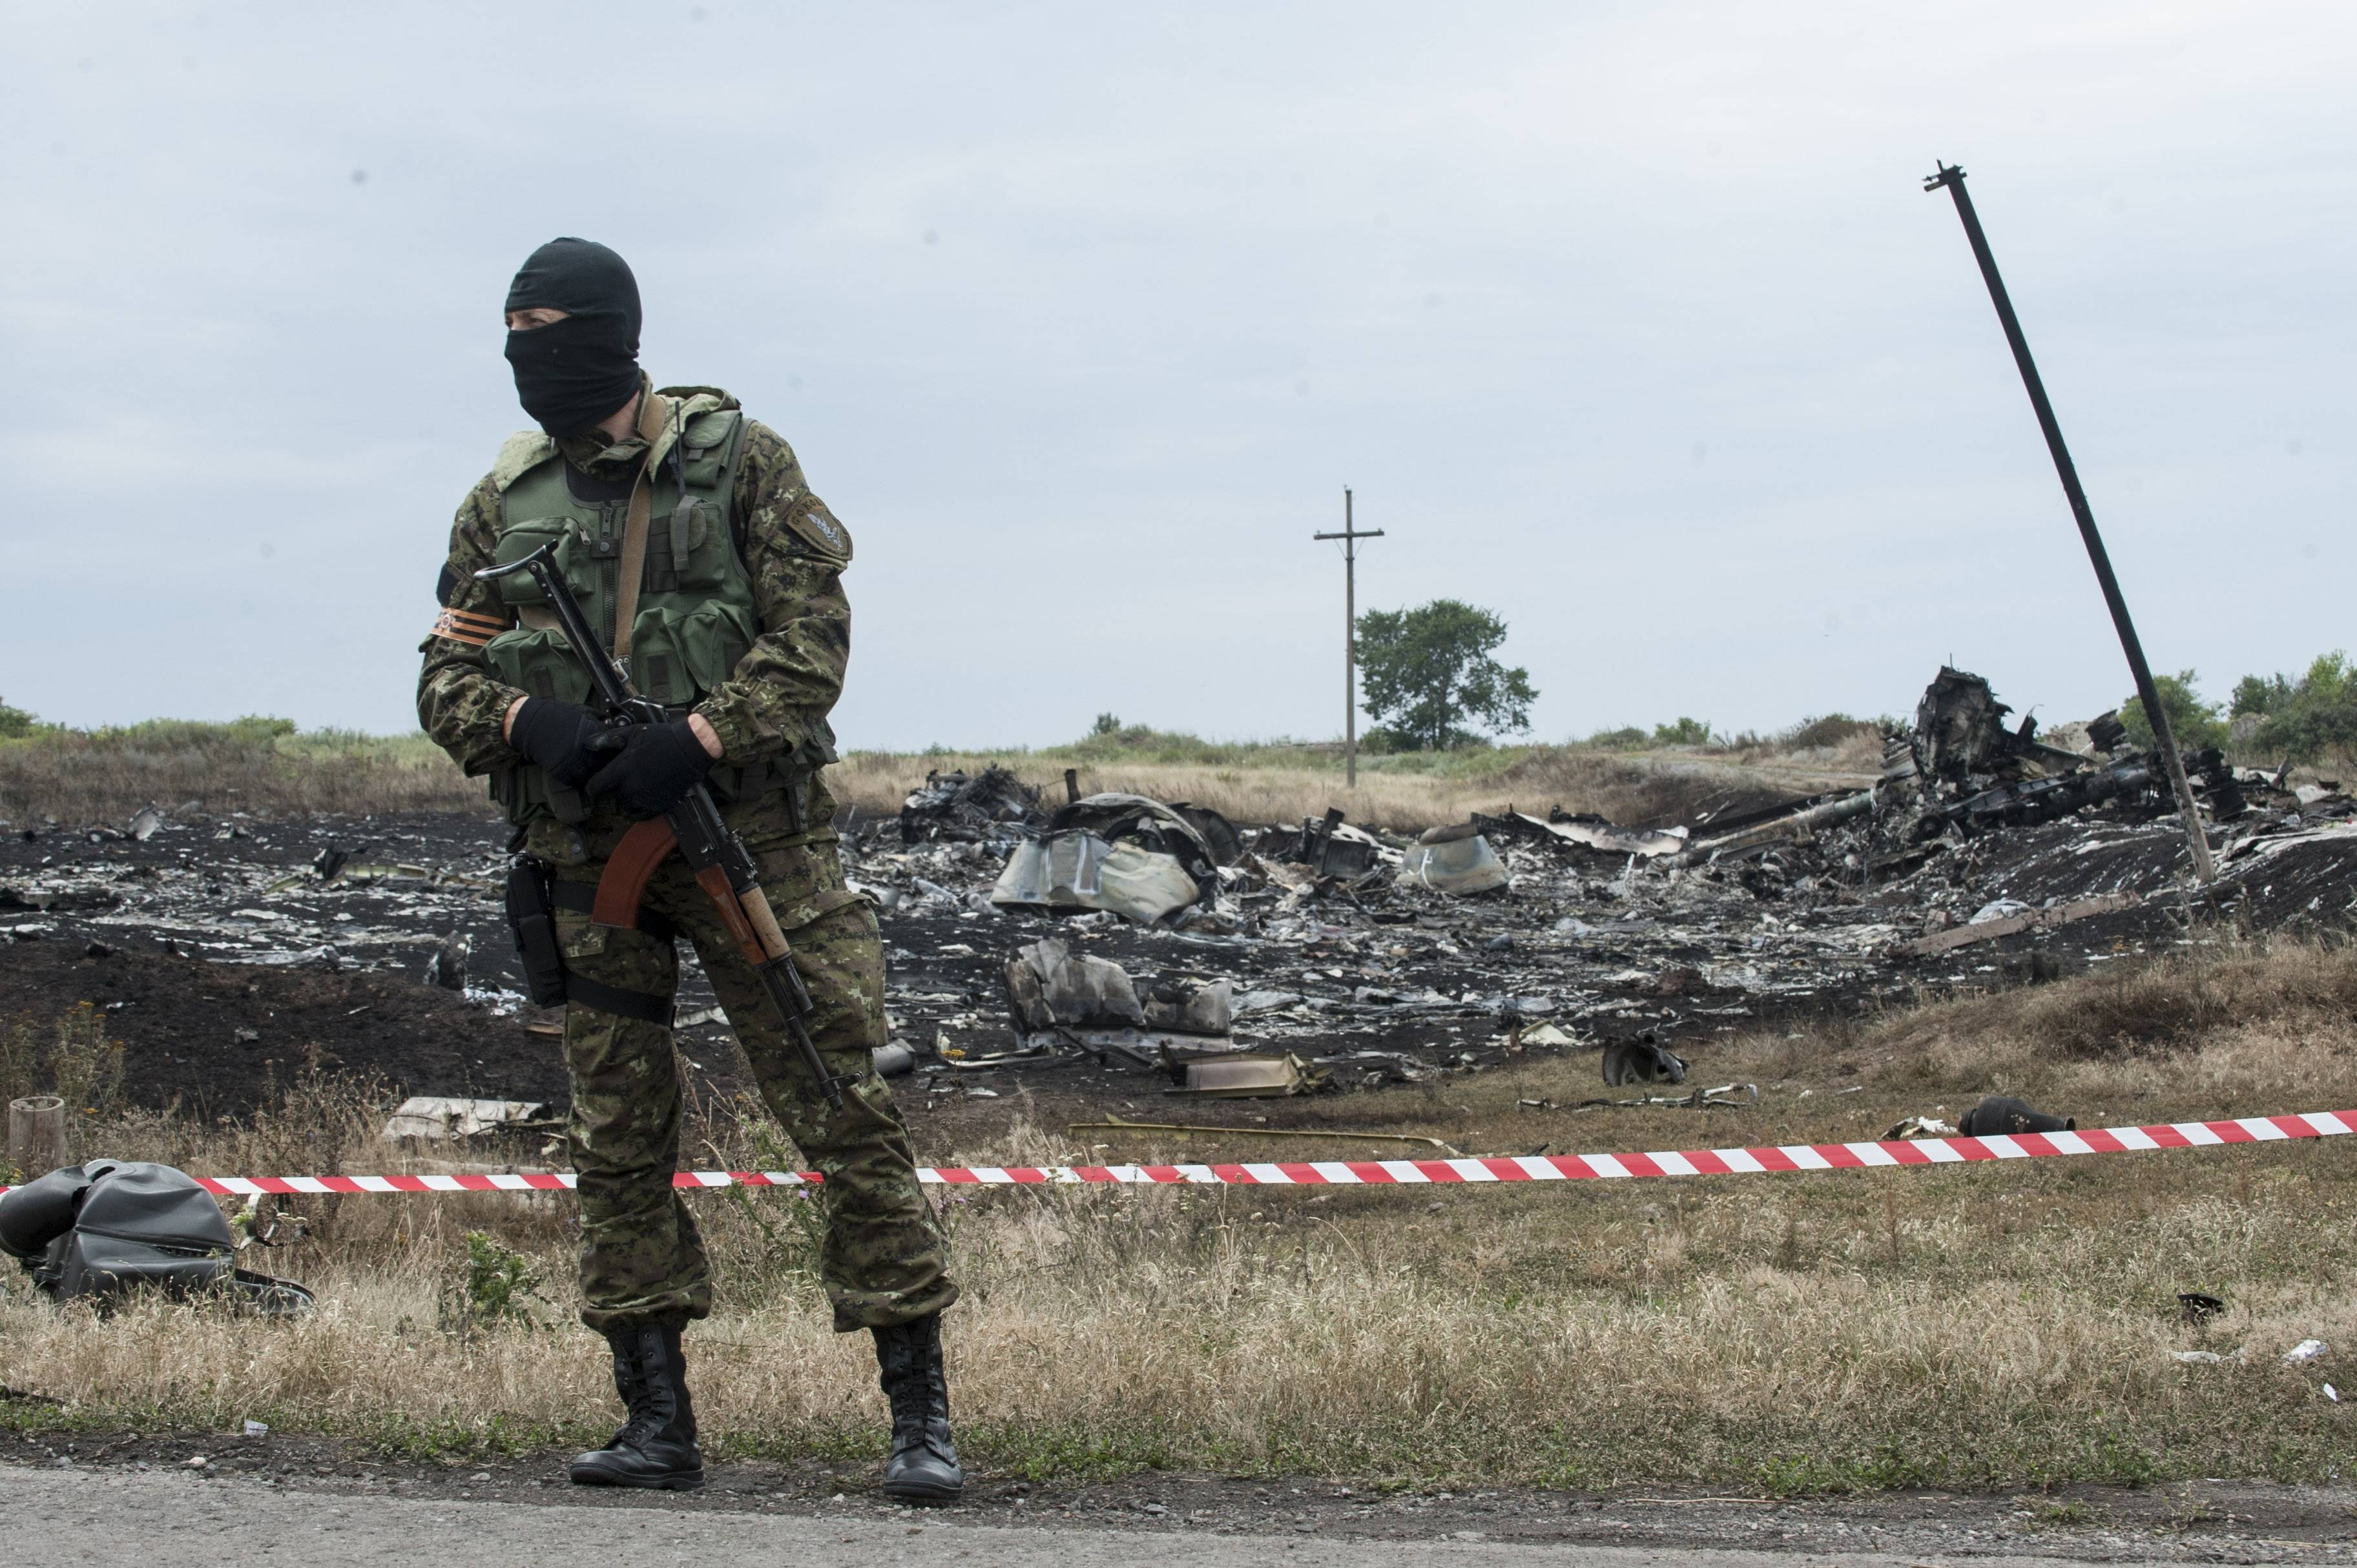 A pro-Russian fighter guards the crash site of a Malaysia Airlines jet near the village of Hrabove, eastern Ukraine, Saturday, July 19, 2014. Ukraine accused Russia on Saturday of helping separatist rebels destroy evidence at the crash site of a Malaysia Airlines plane shot down in rebel-held territory — a charge the rebels denied.